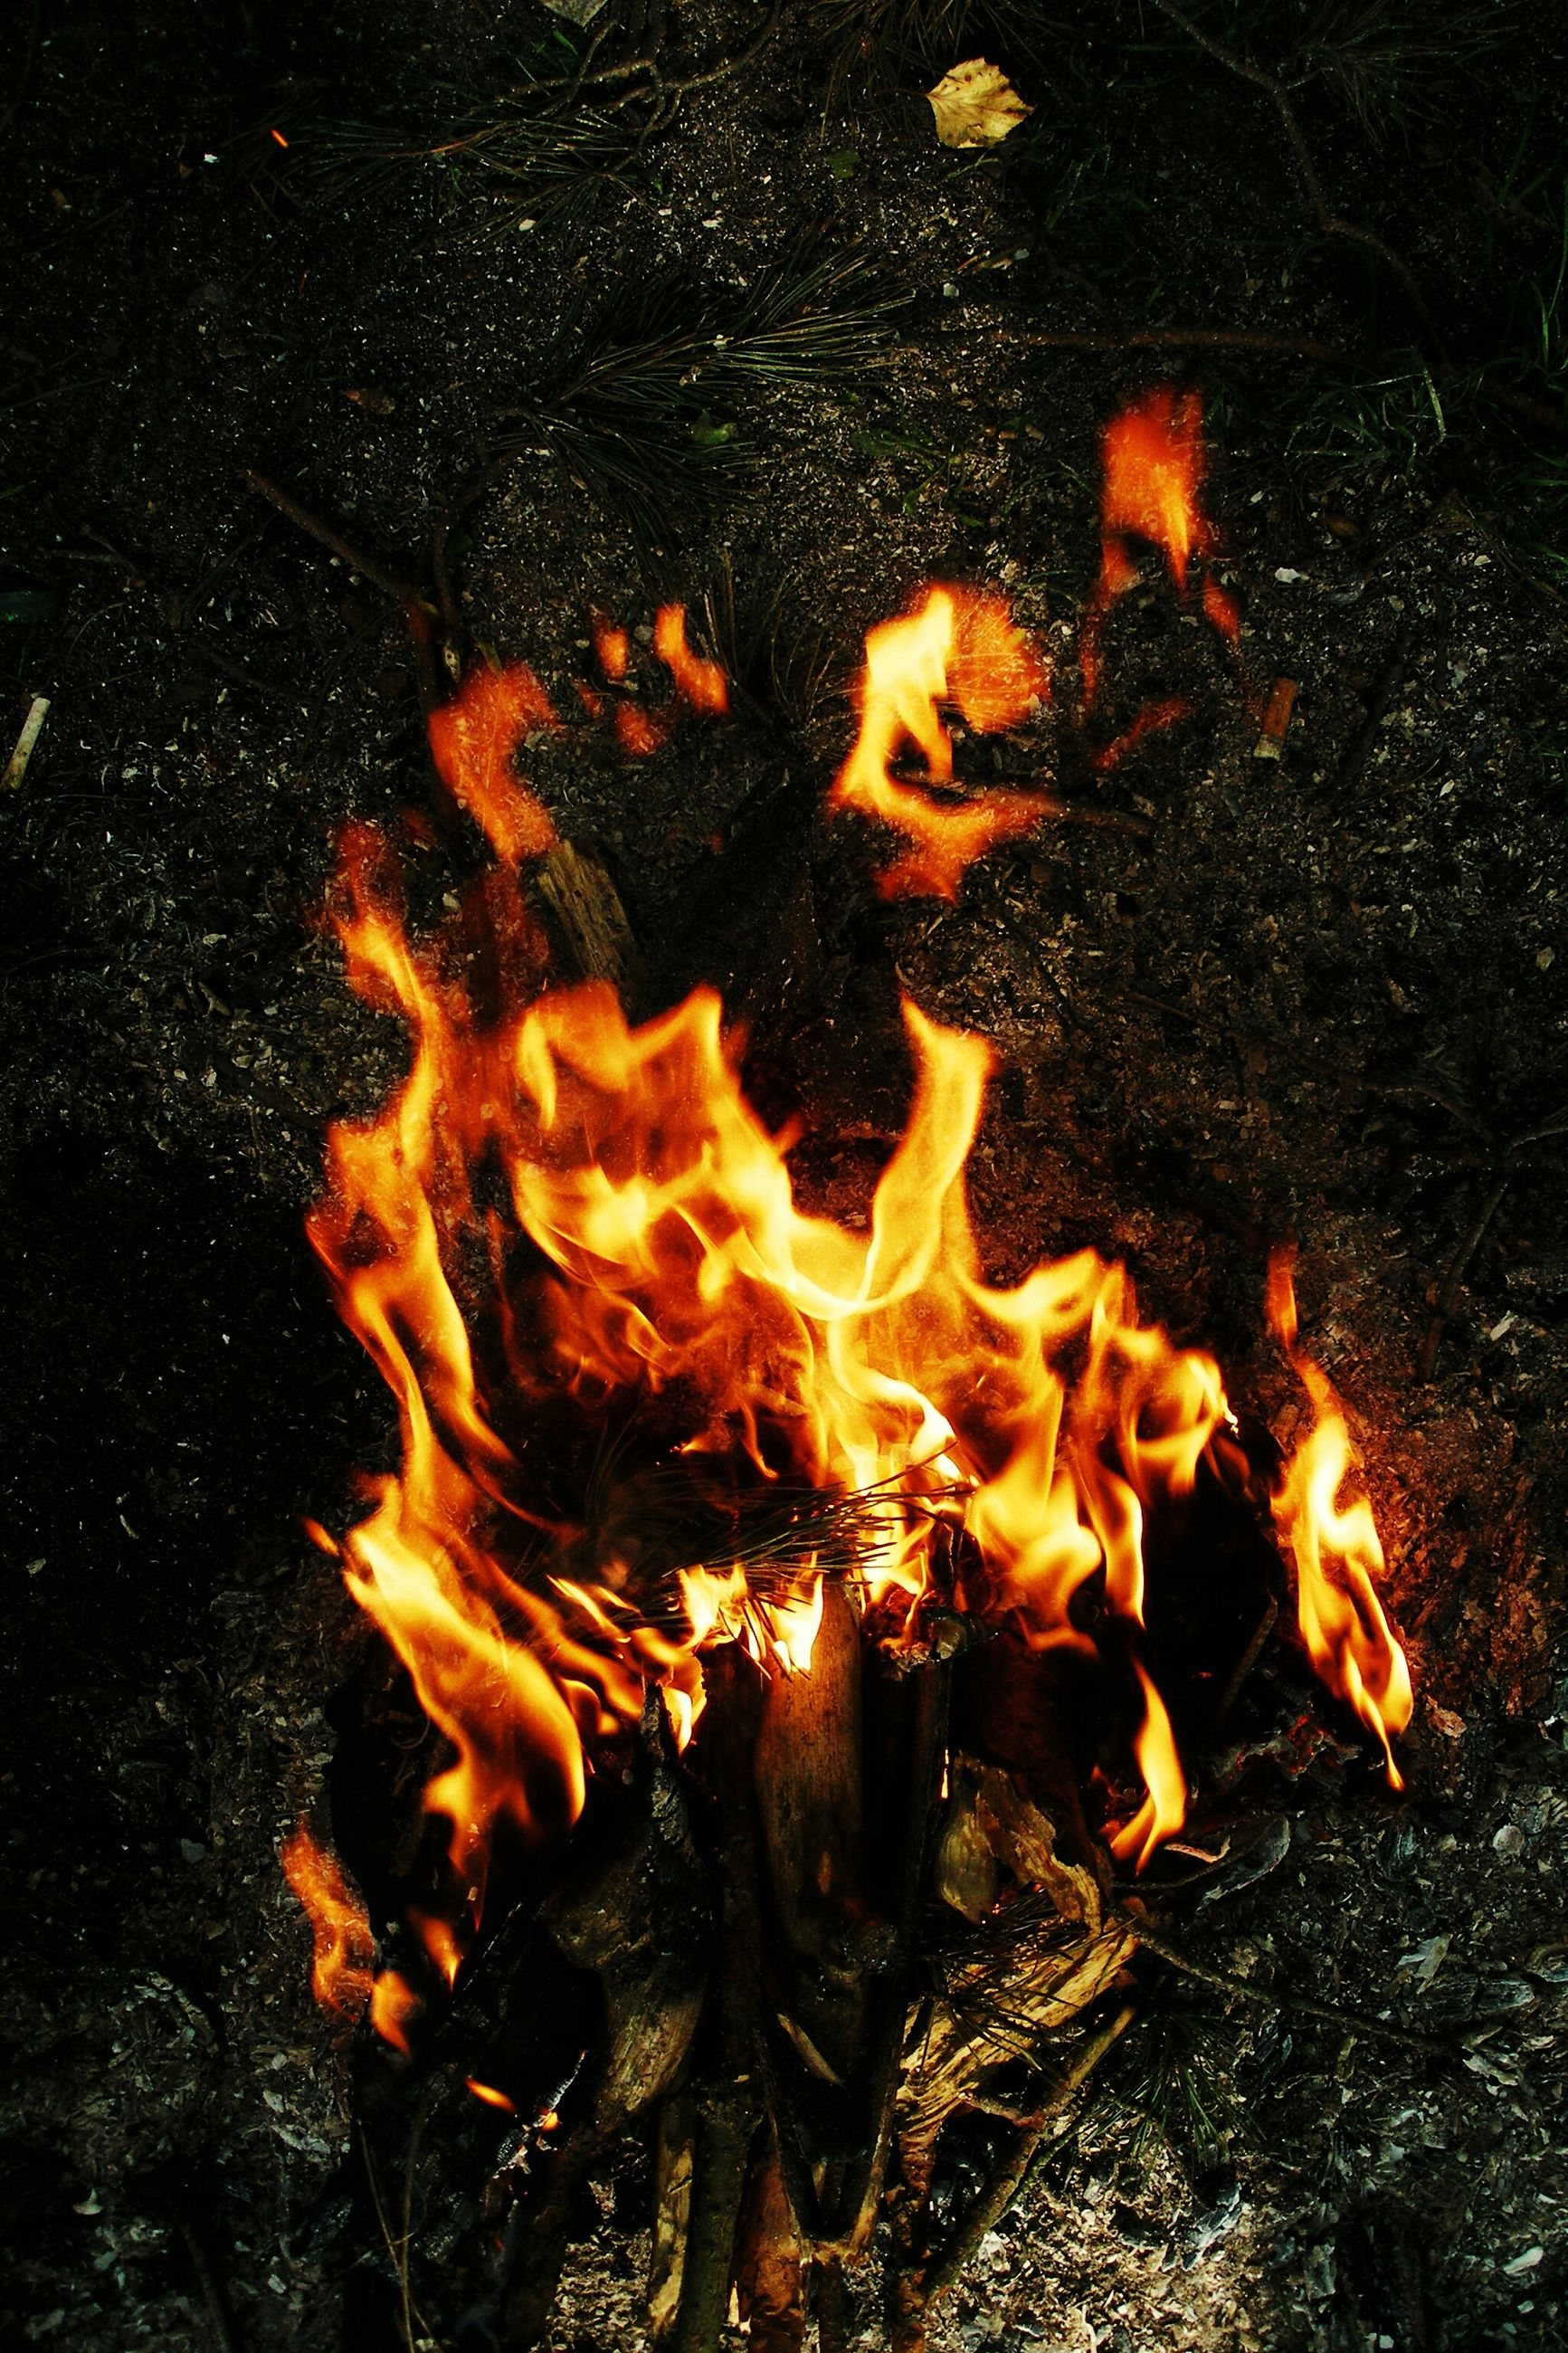 burning, flame, heat - temperature, fire - natural phenomenon, bonfire, firewood, glowing, campfire, fire, orange color, heat, night, motion, close-up, high angle view, outdoors, no people, wood - material, field, nature